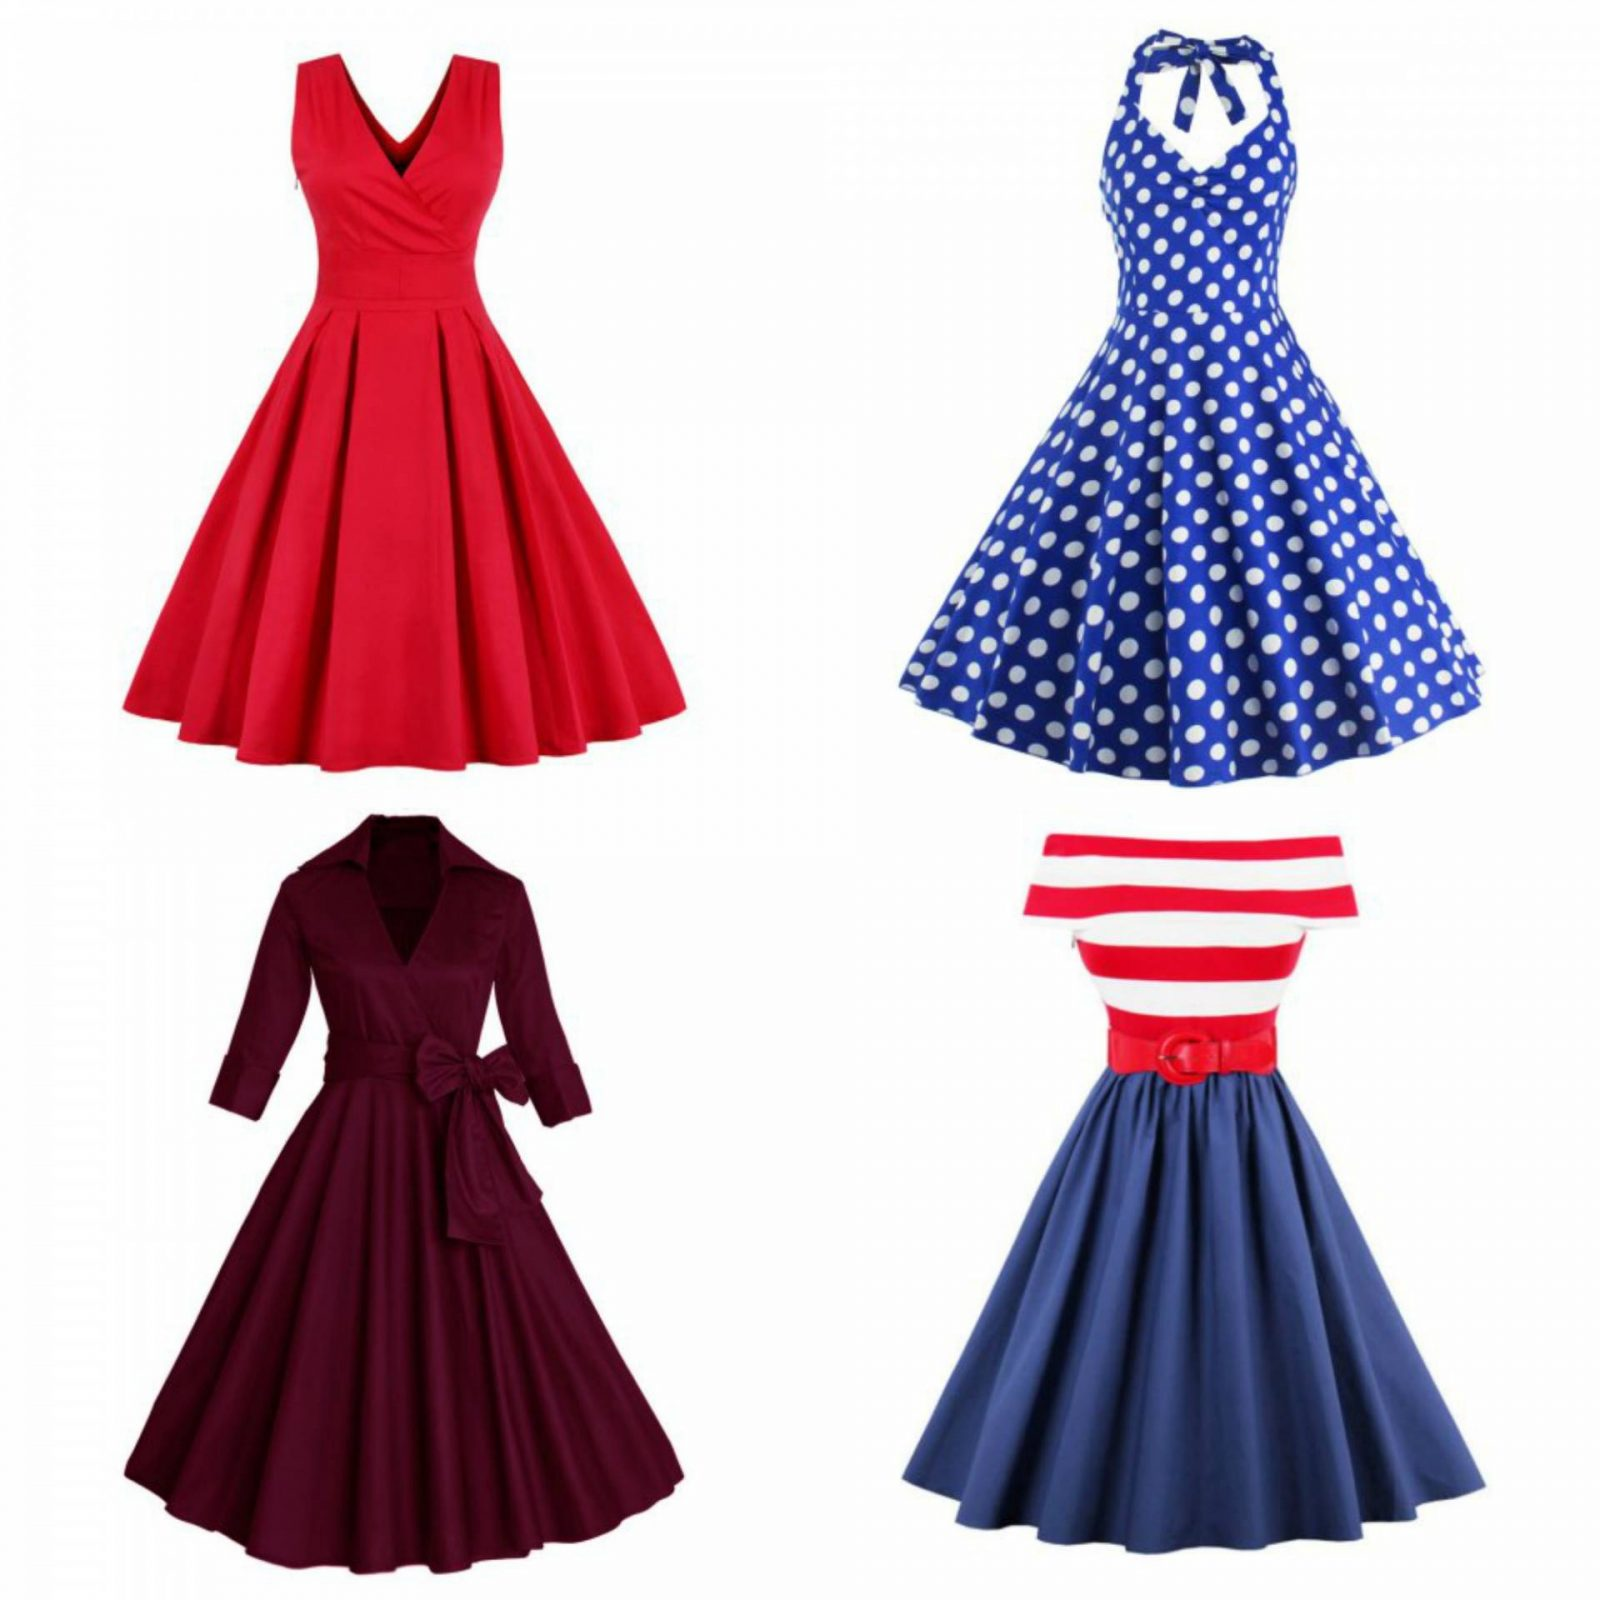 Rosegal Dresses